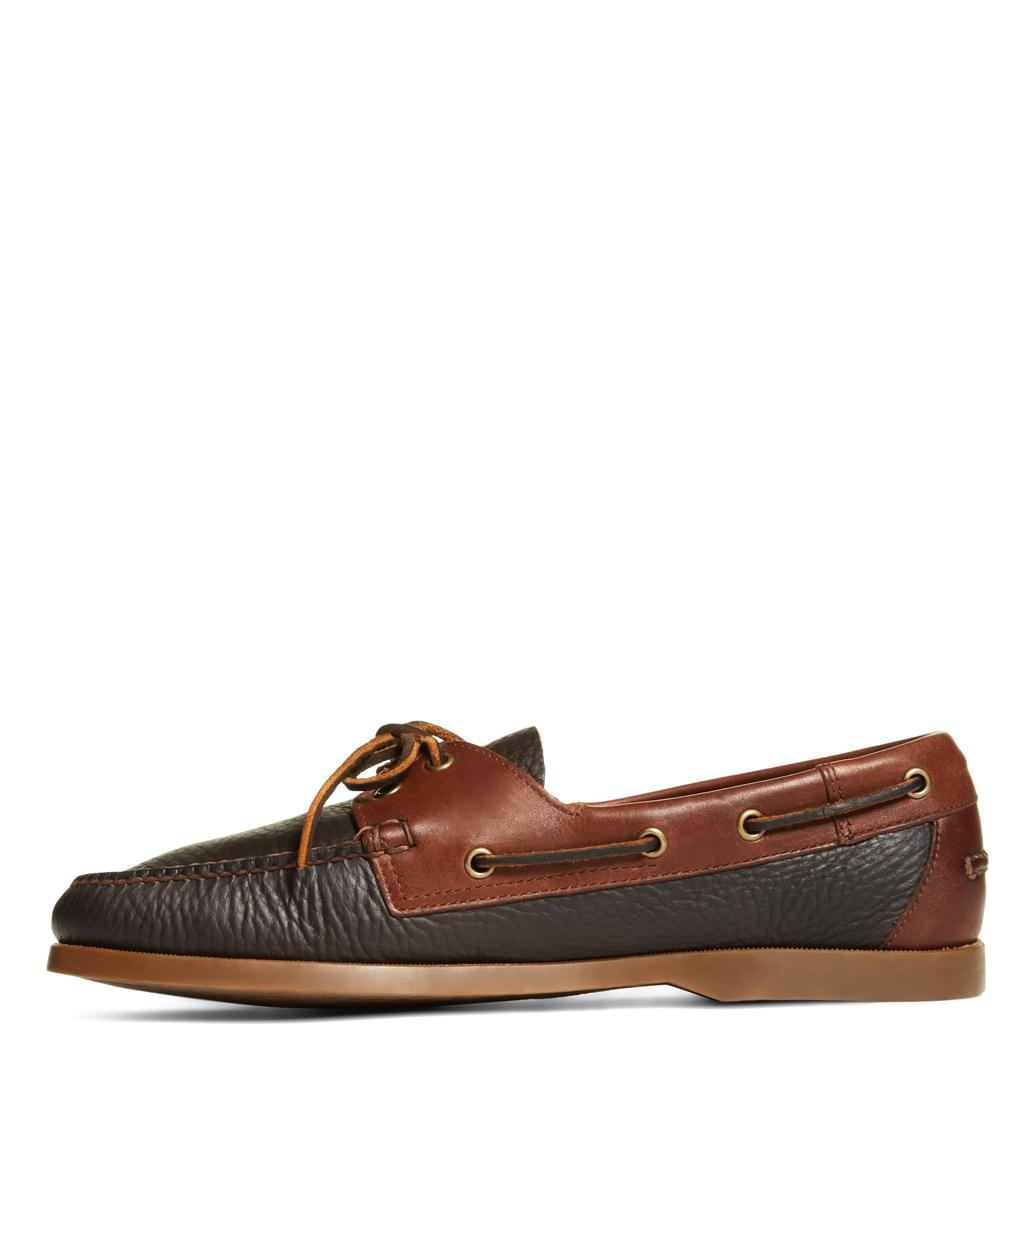 30958fd4e2b Lyst - Brooks Brothers Contrasting Leather Boat Shoes in Brown for Men